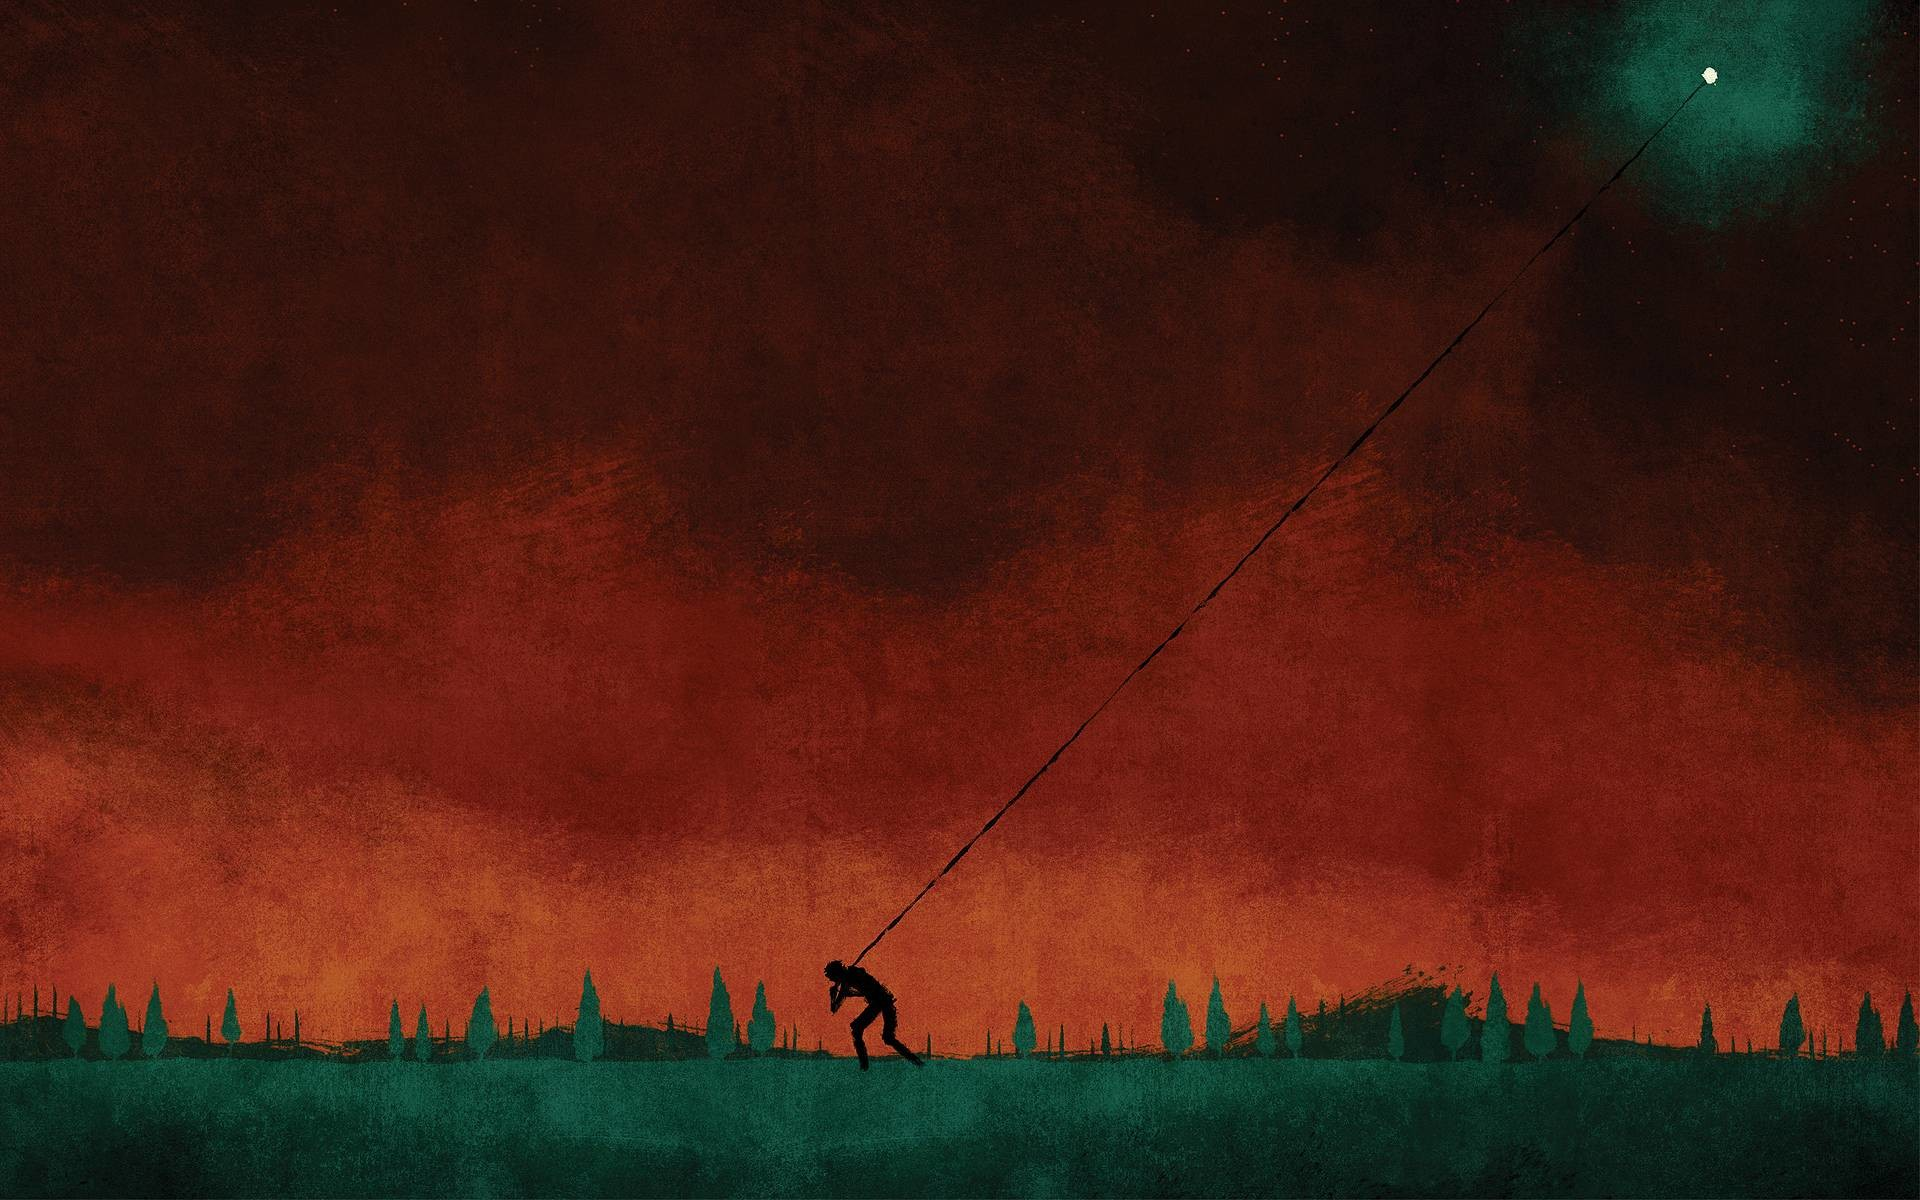 1920x1200 My current and favorite wallpaper. Any August Burns Red fans?